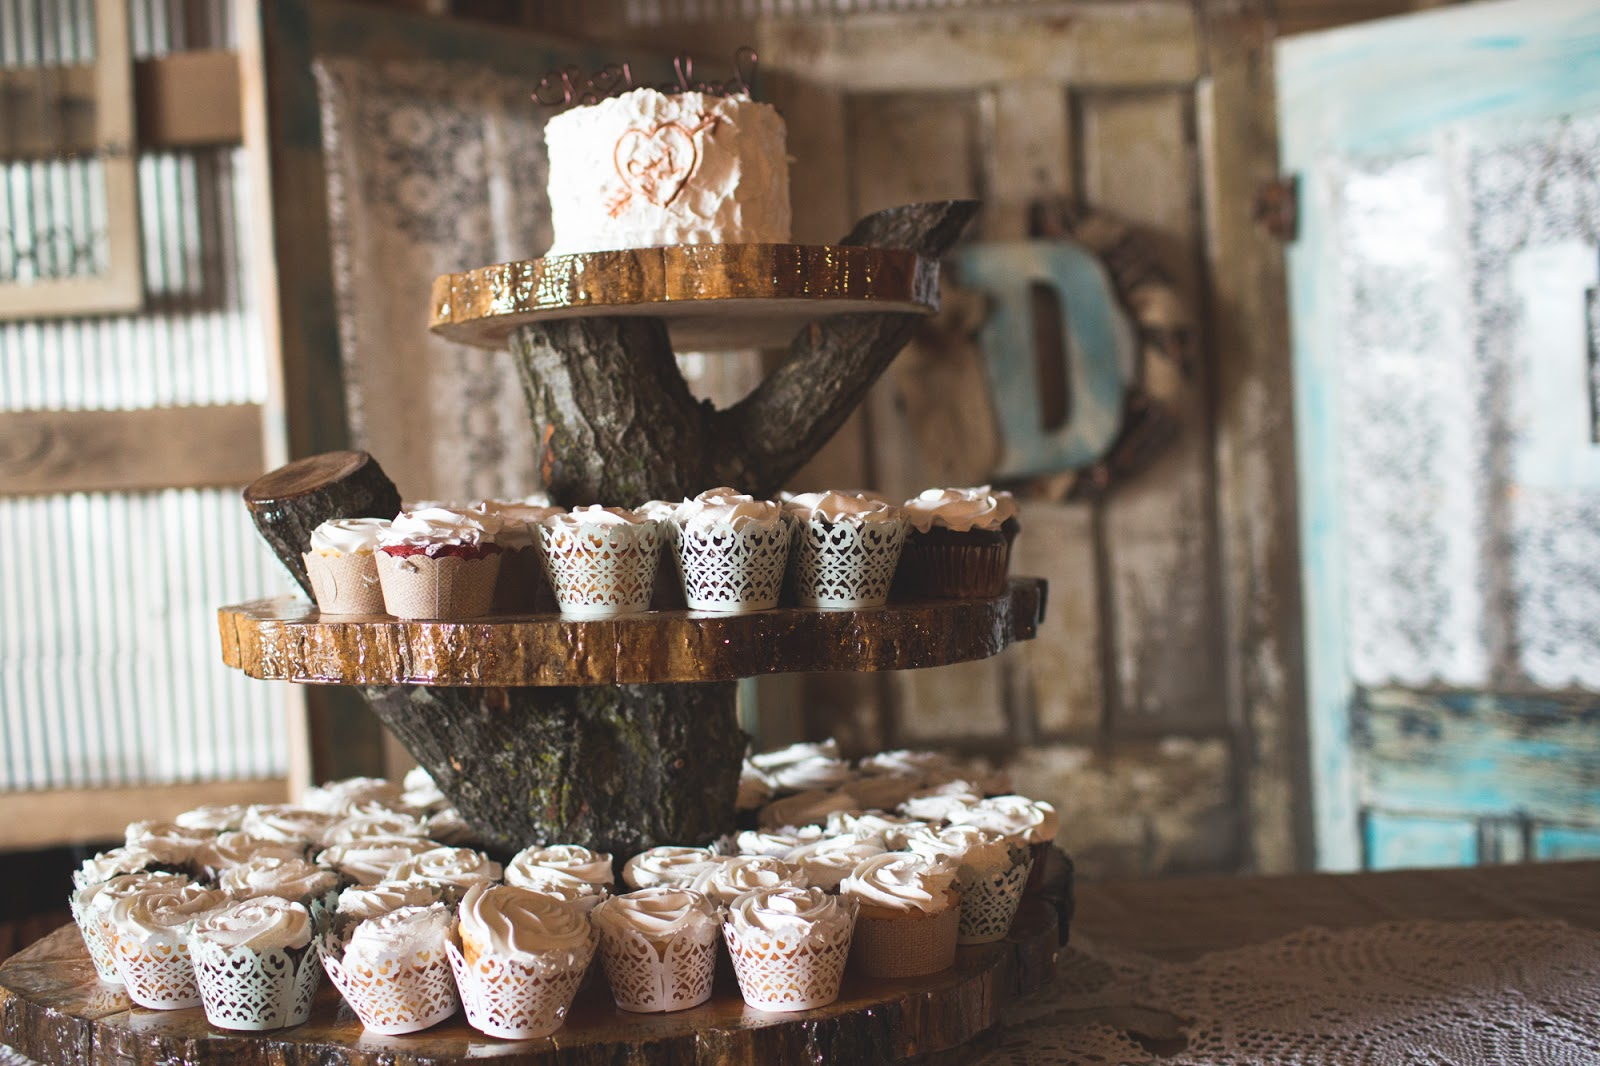 Uncategorized cupcake stands for weddings cheap - Uncategorized Cupcake Stands For Weddings Cheap 46